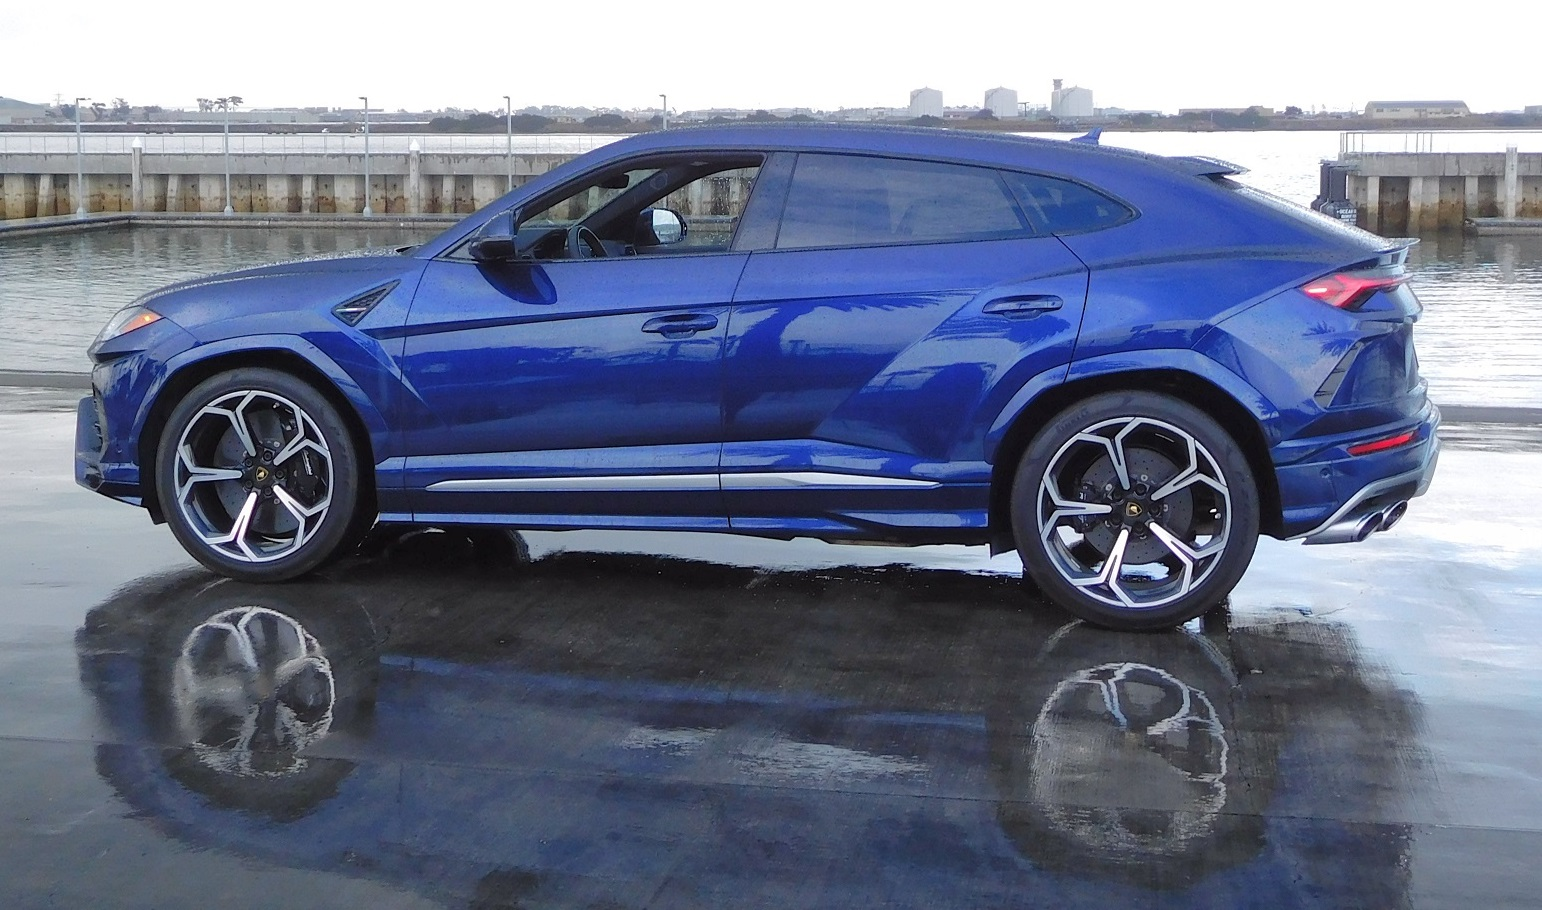 A side view of the Urus